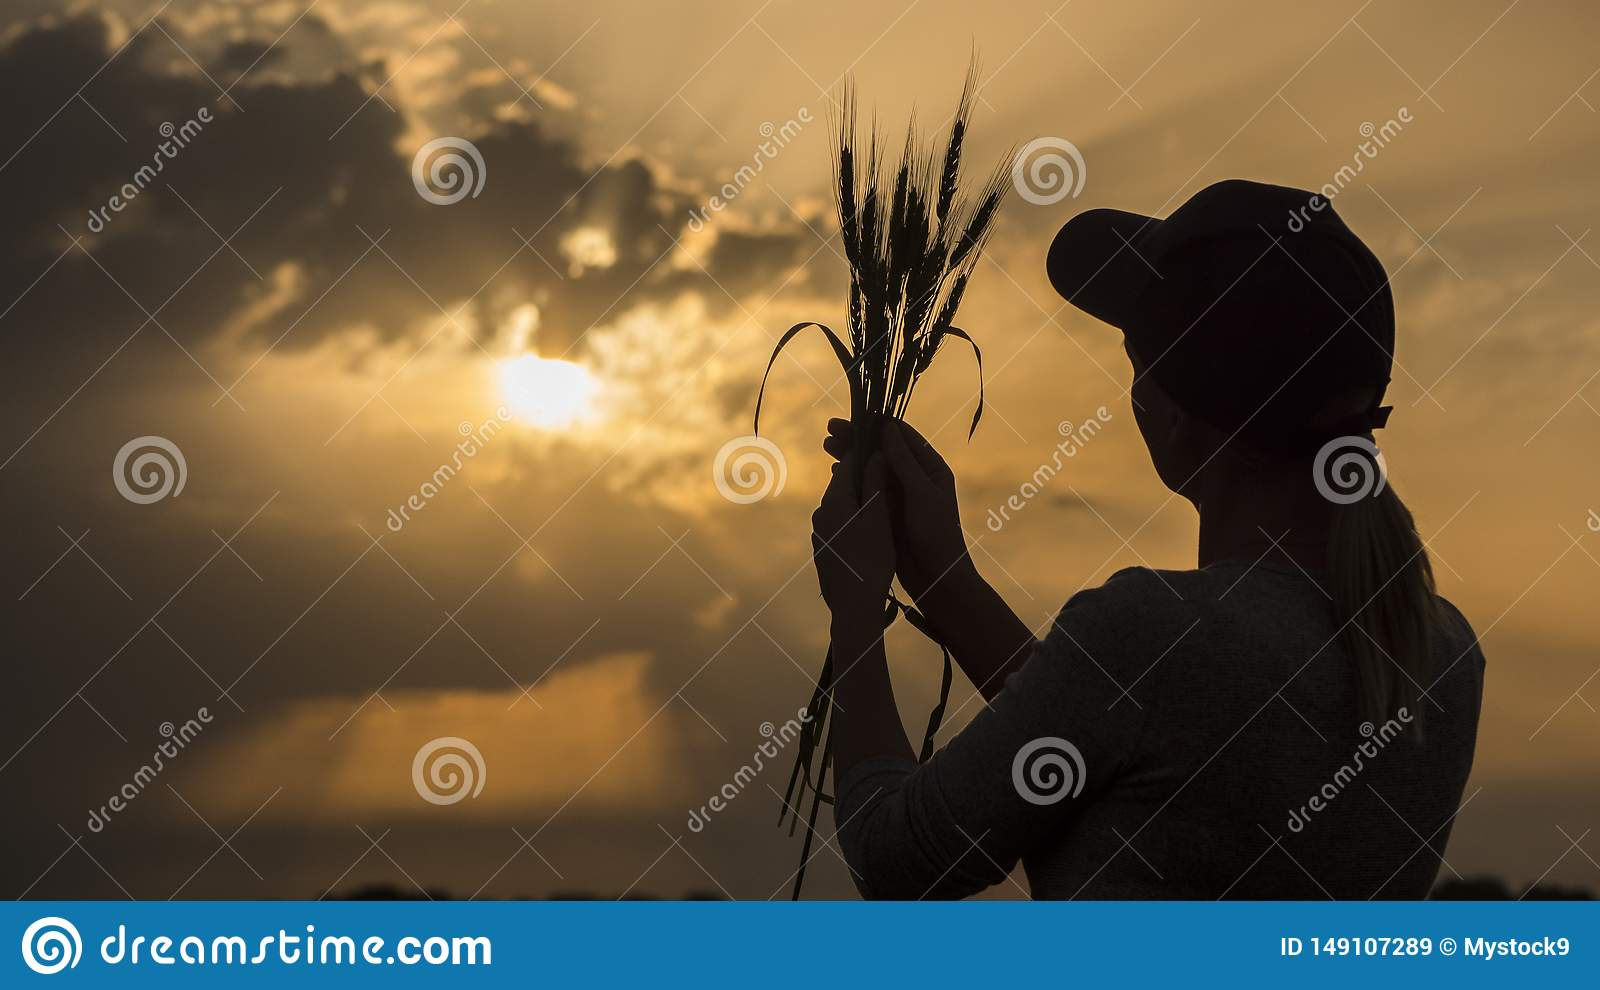 Silhouette of a young farmer looking at the ears of wheat. Back view